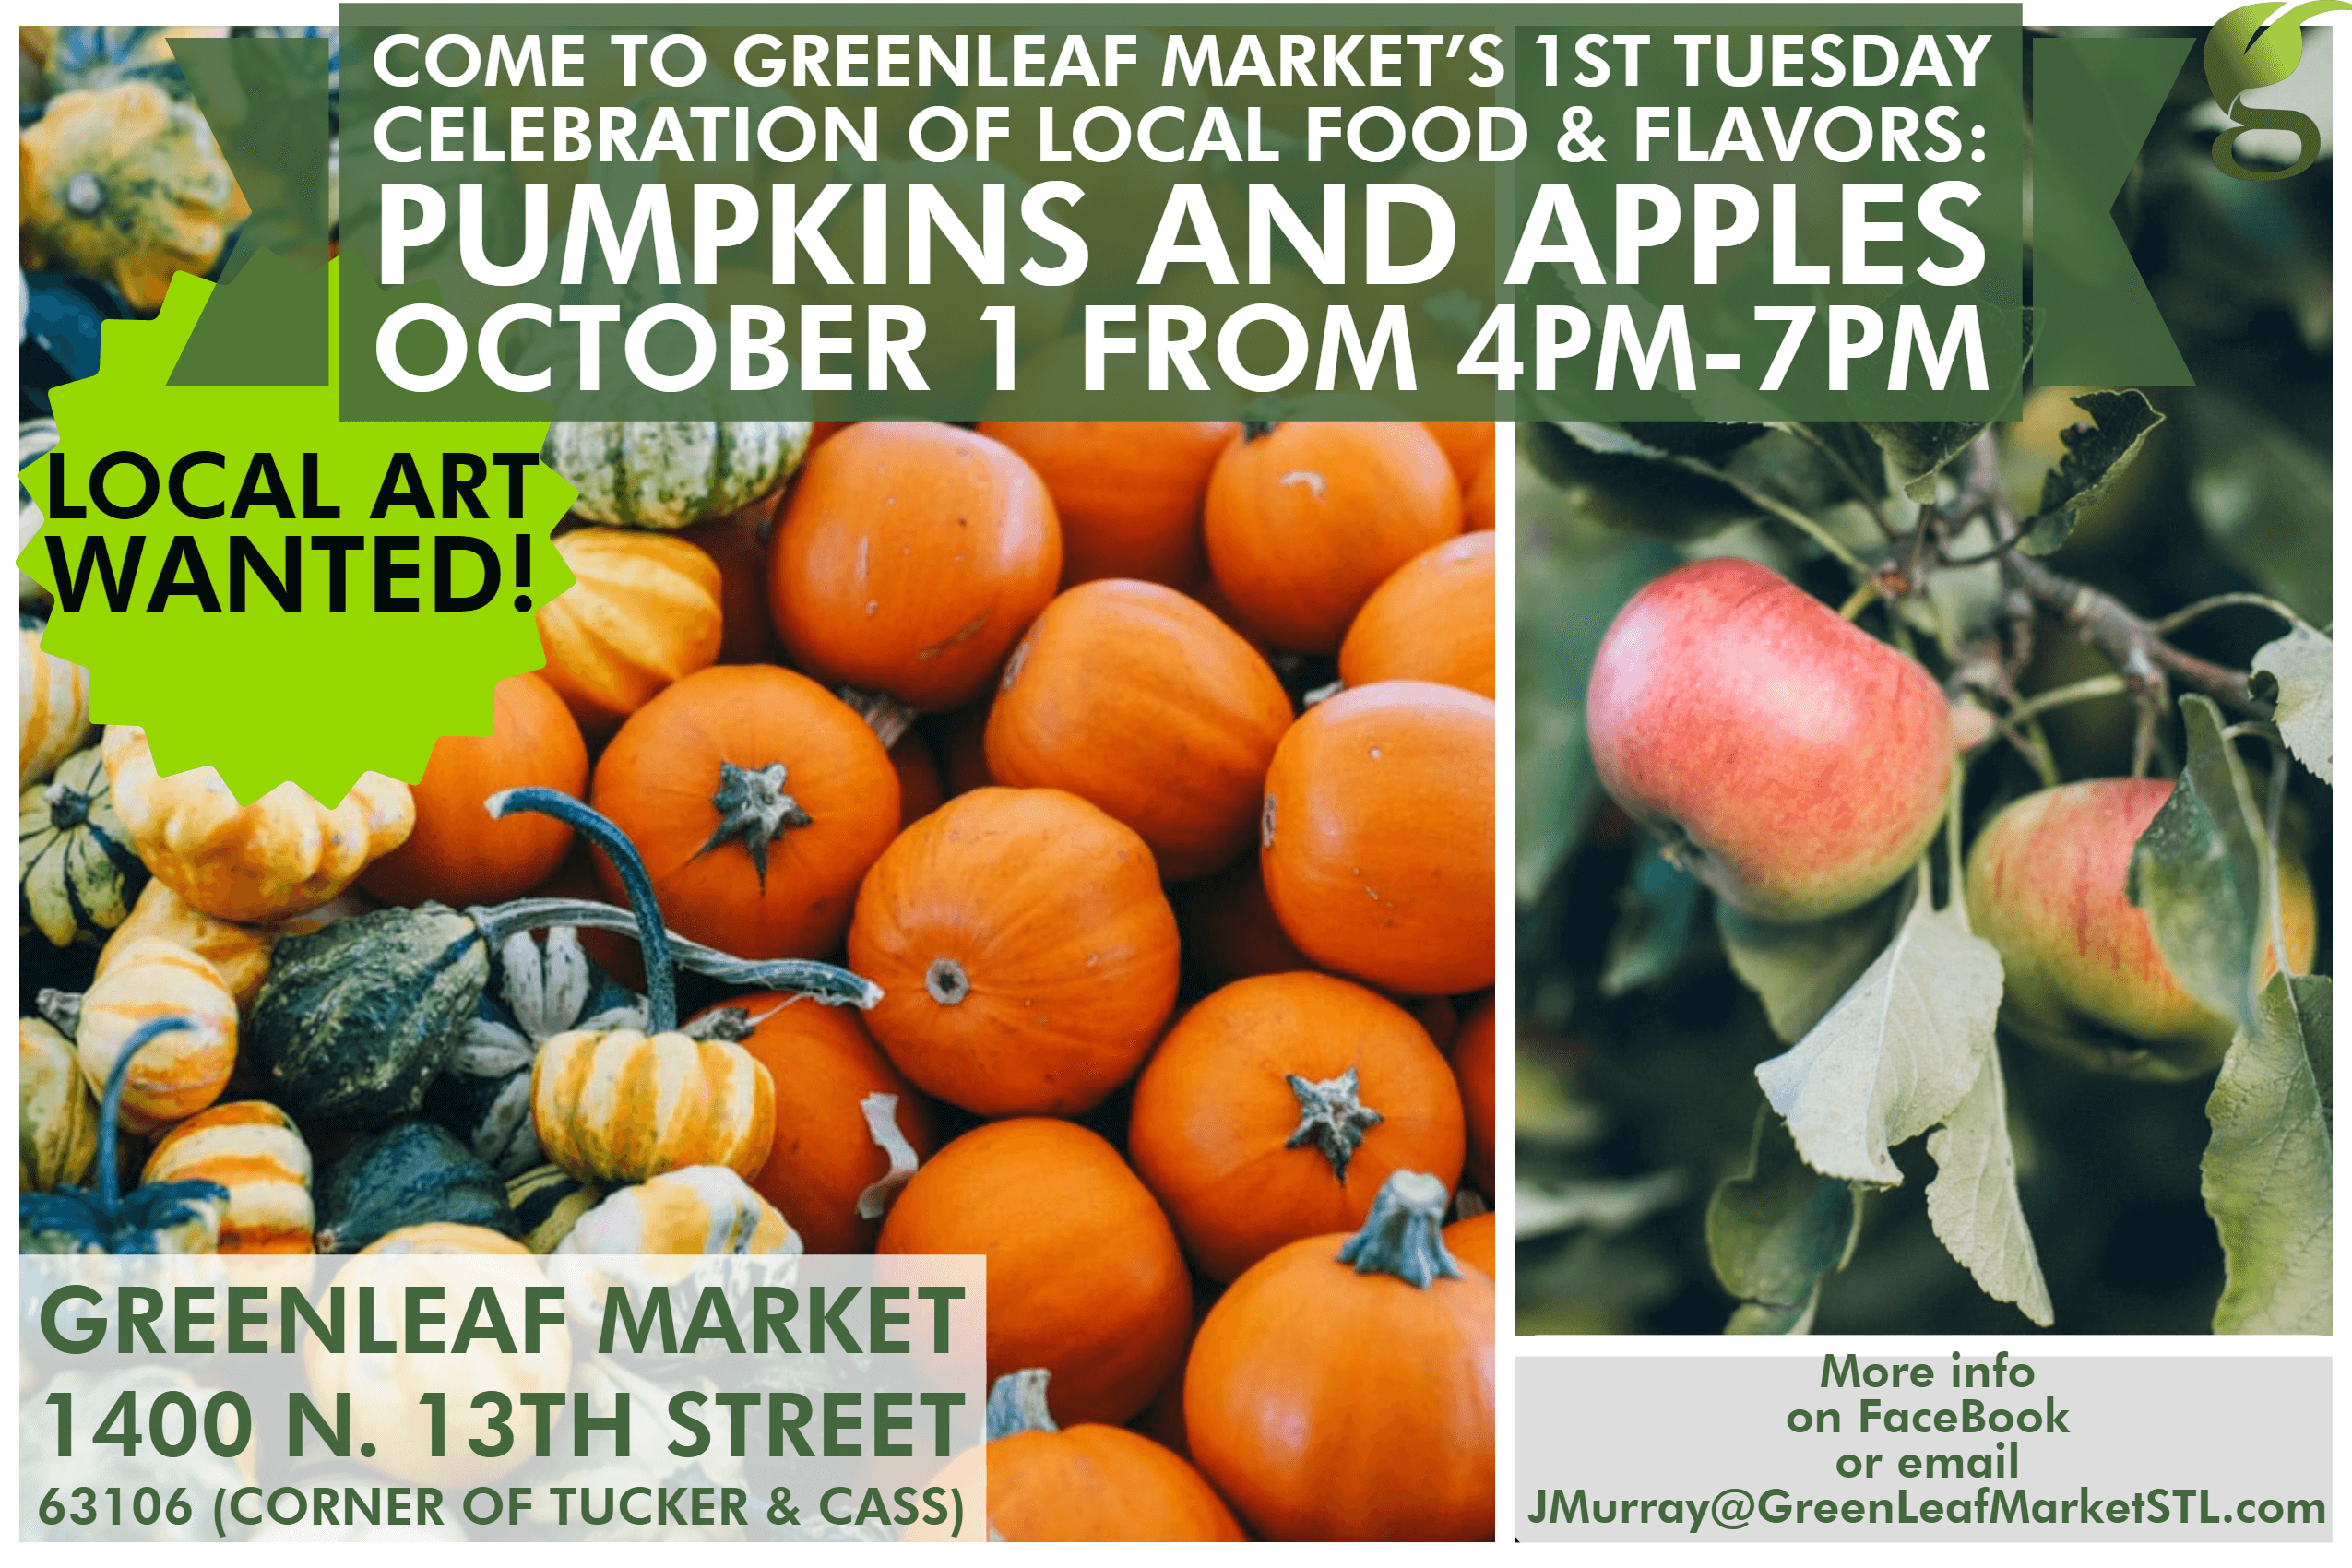 Tuesday October 1, 4PM-7PM: First Tuesday Celebration of Local Food